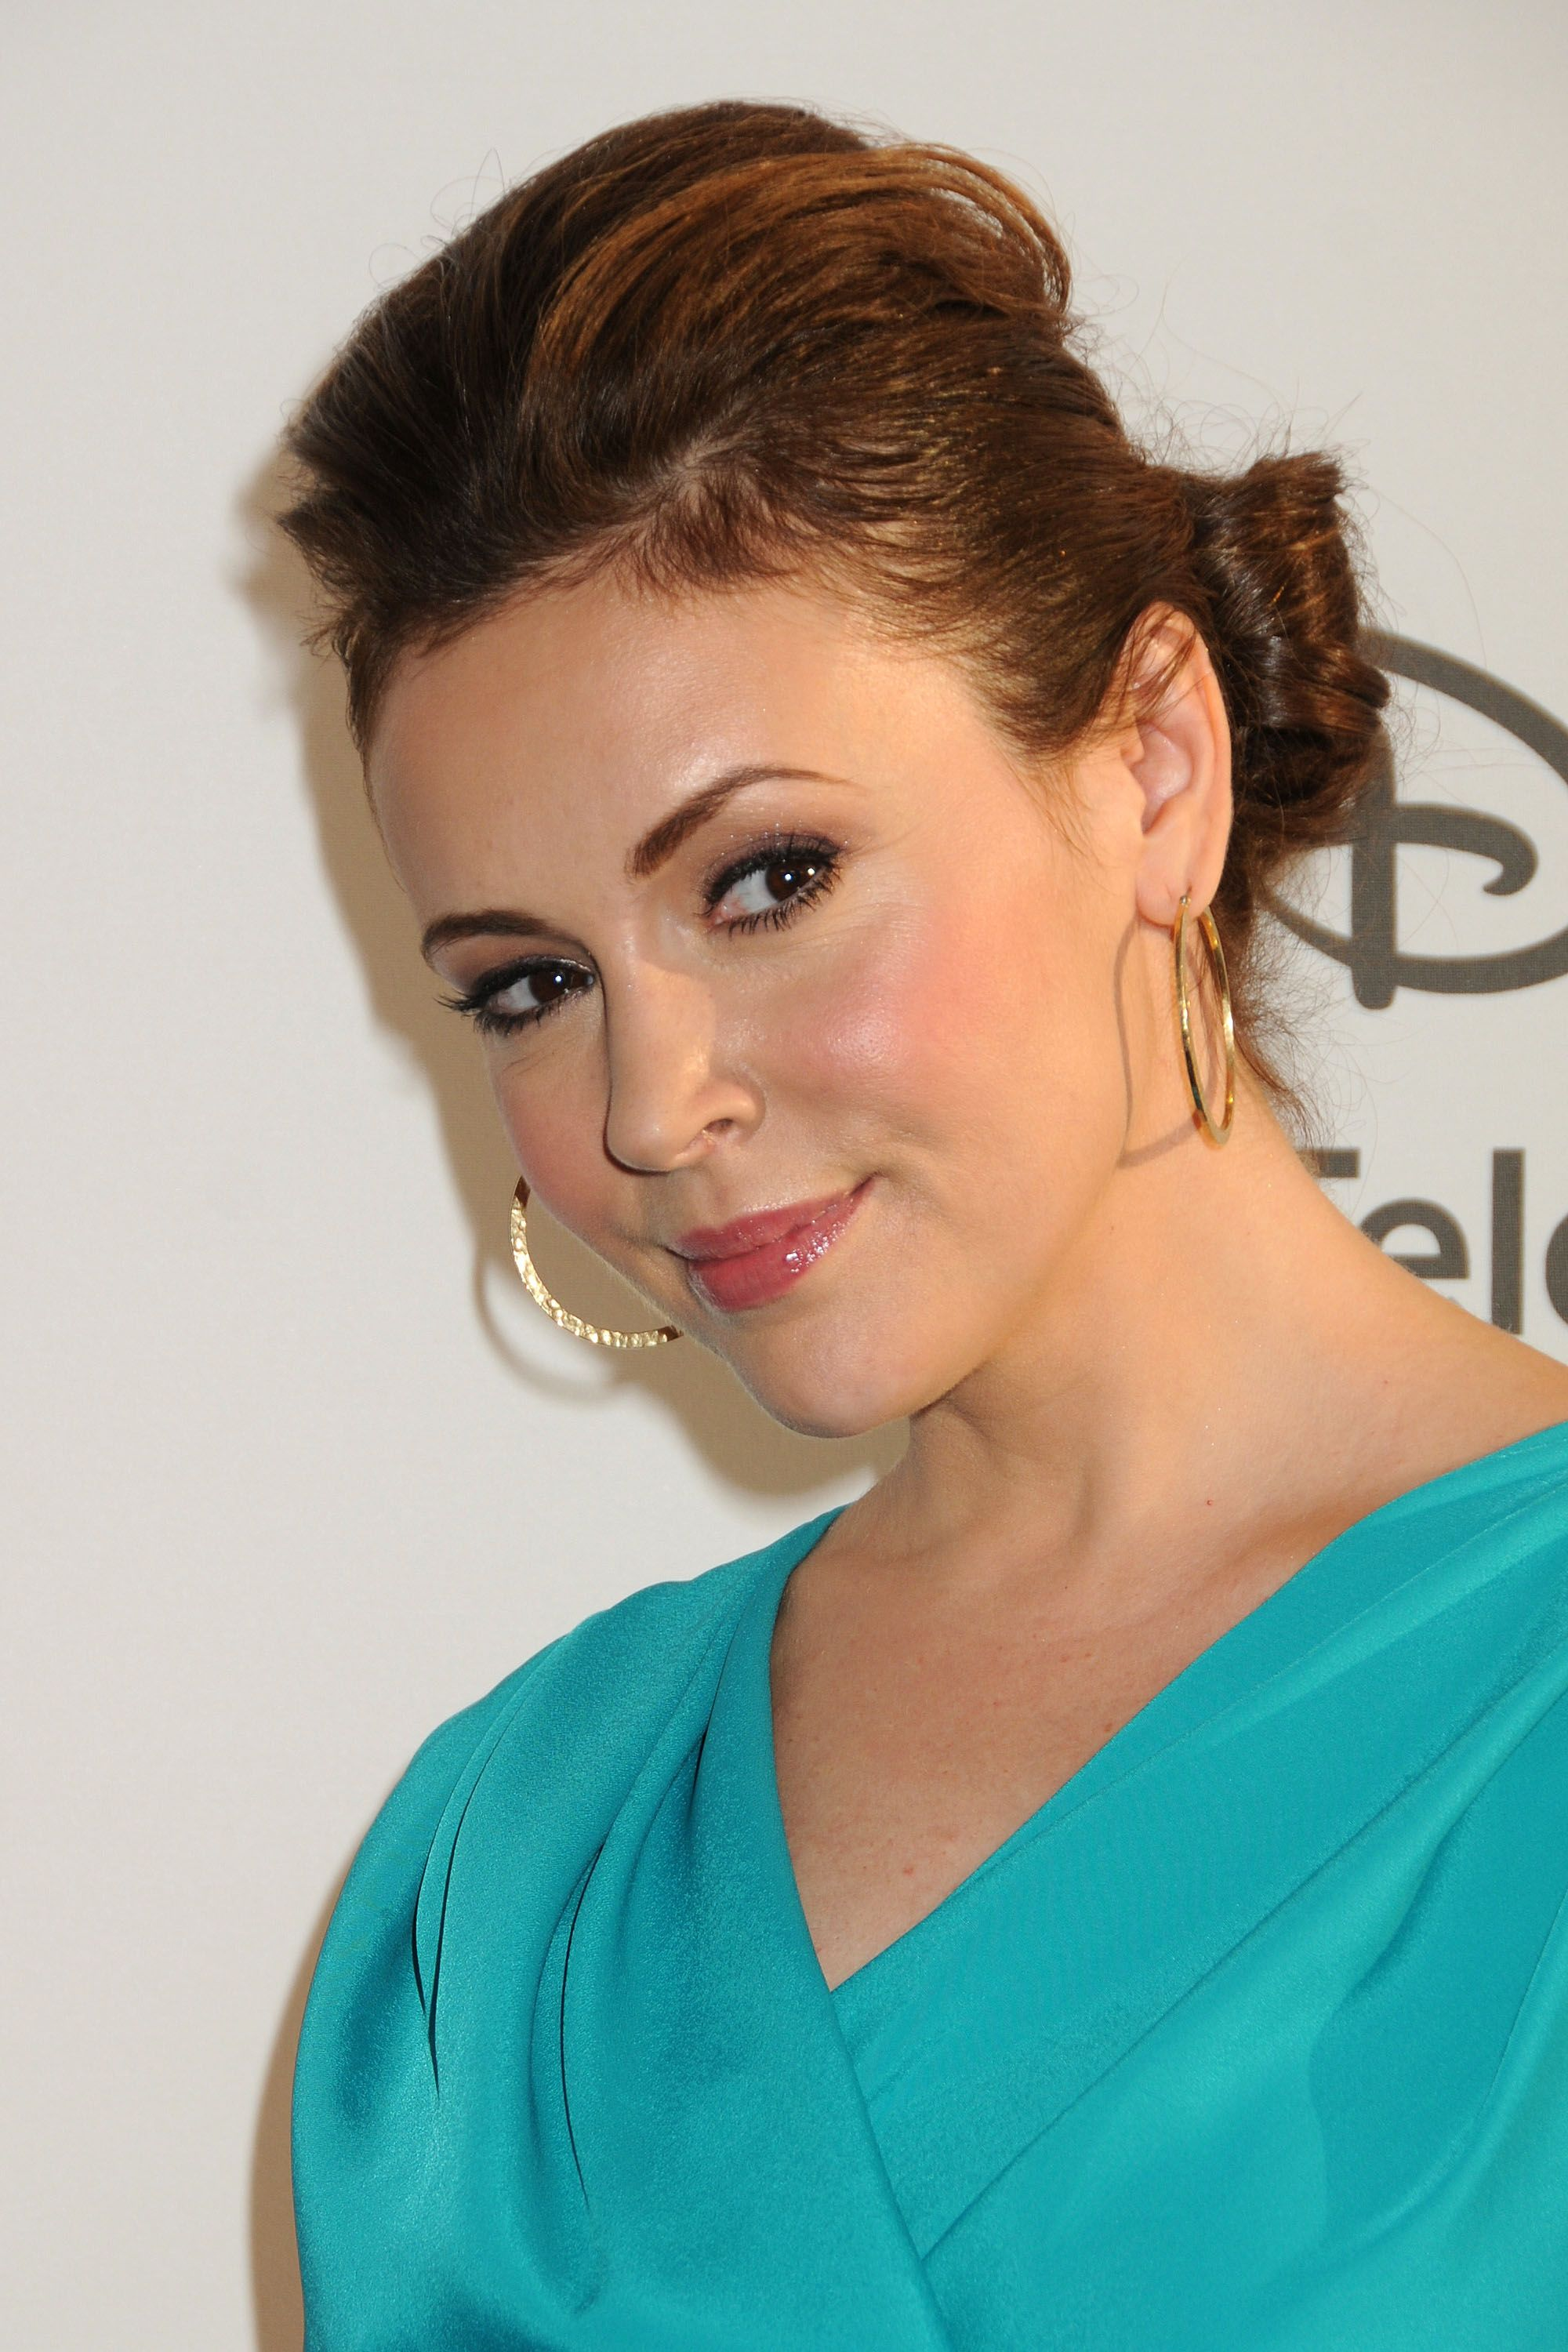 Alyssa Milano Photo Gallery In 2019 Alyssa Milano Fashion Charmed